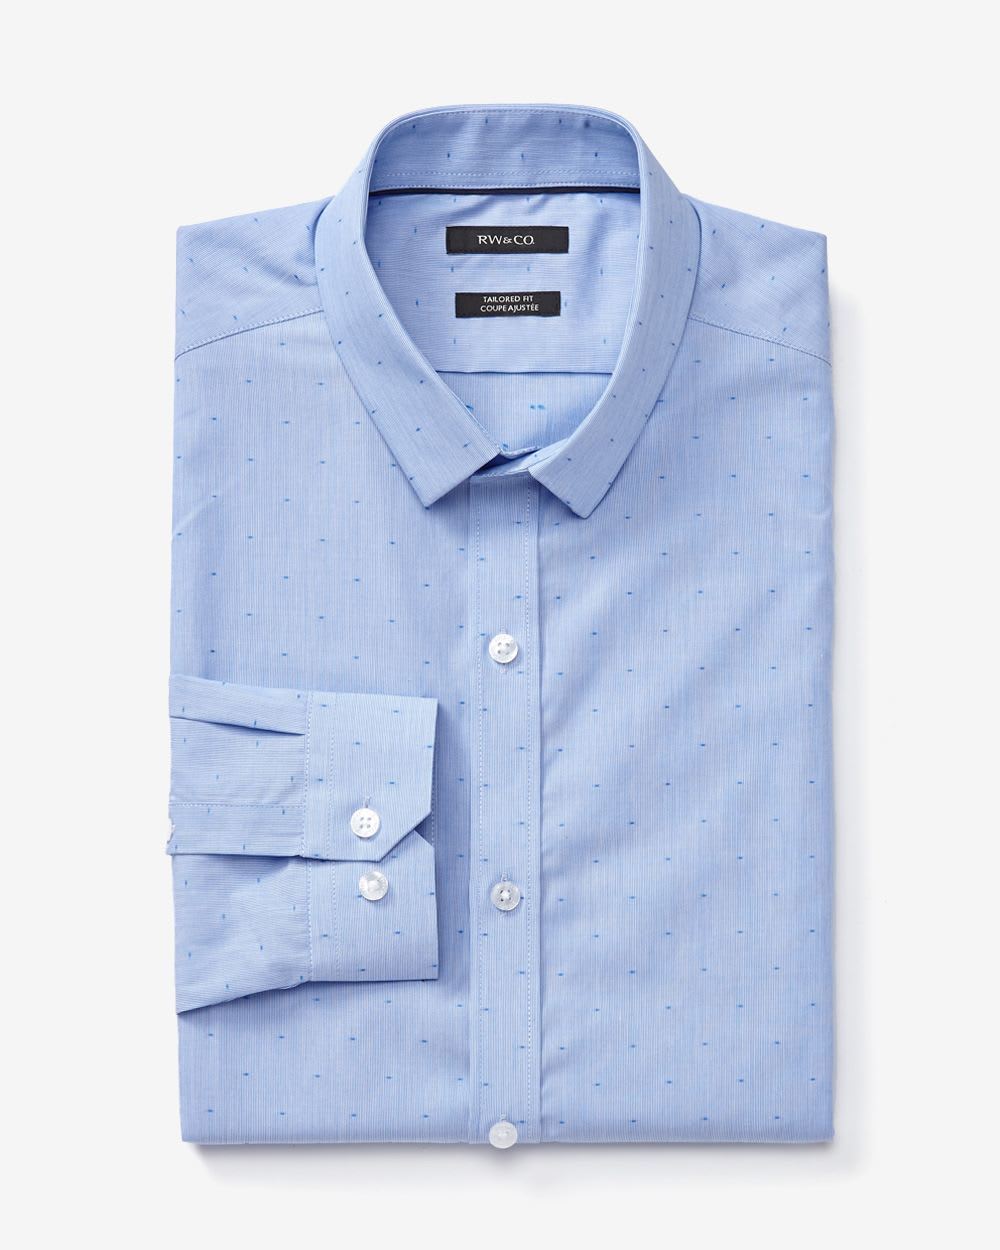 Tailored Fit Dress Shirt With Print And Stripes Rwco